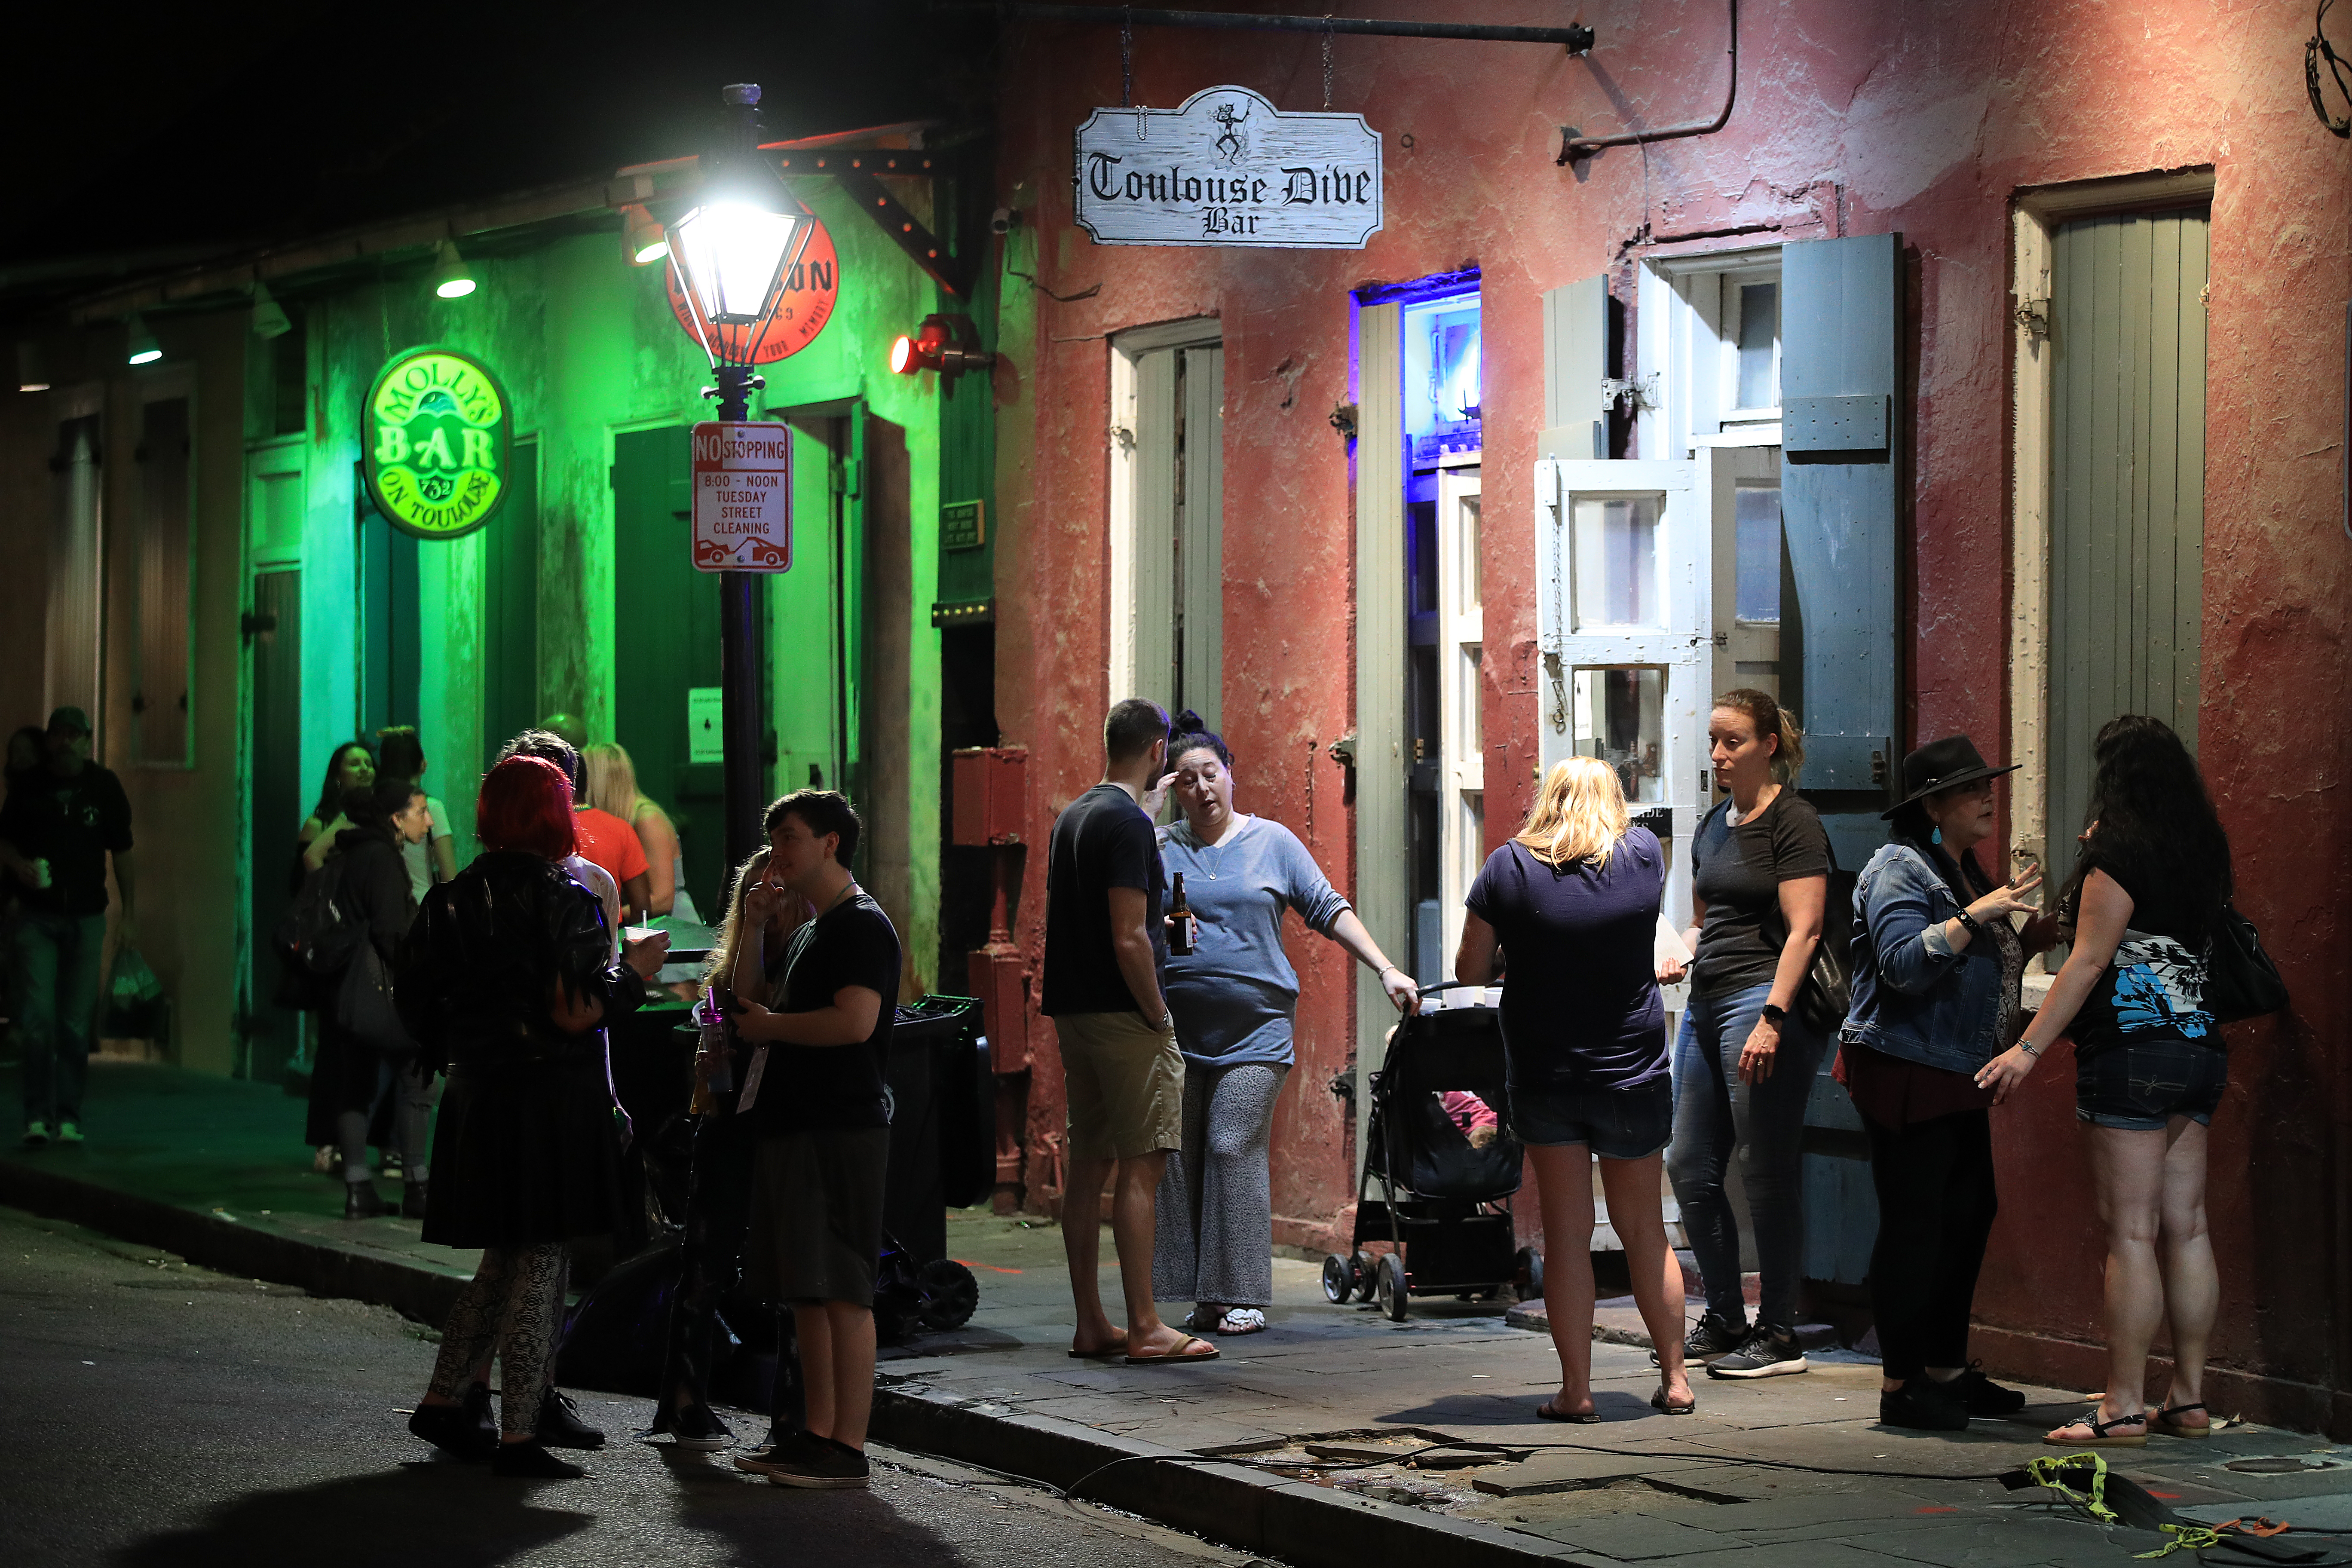 People stand in the street outside of a French Quarter bar on the night of March 16